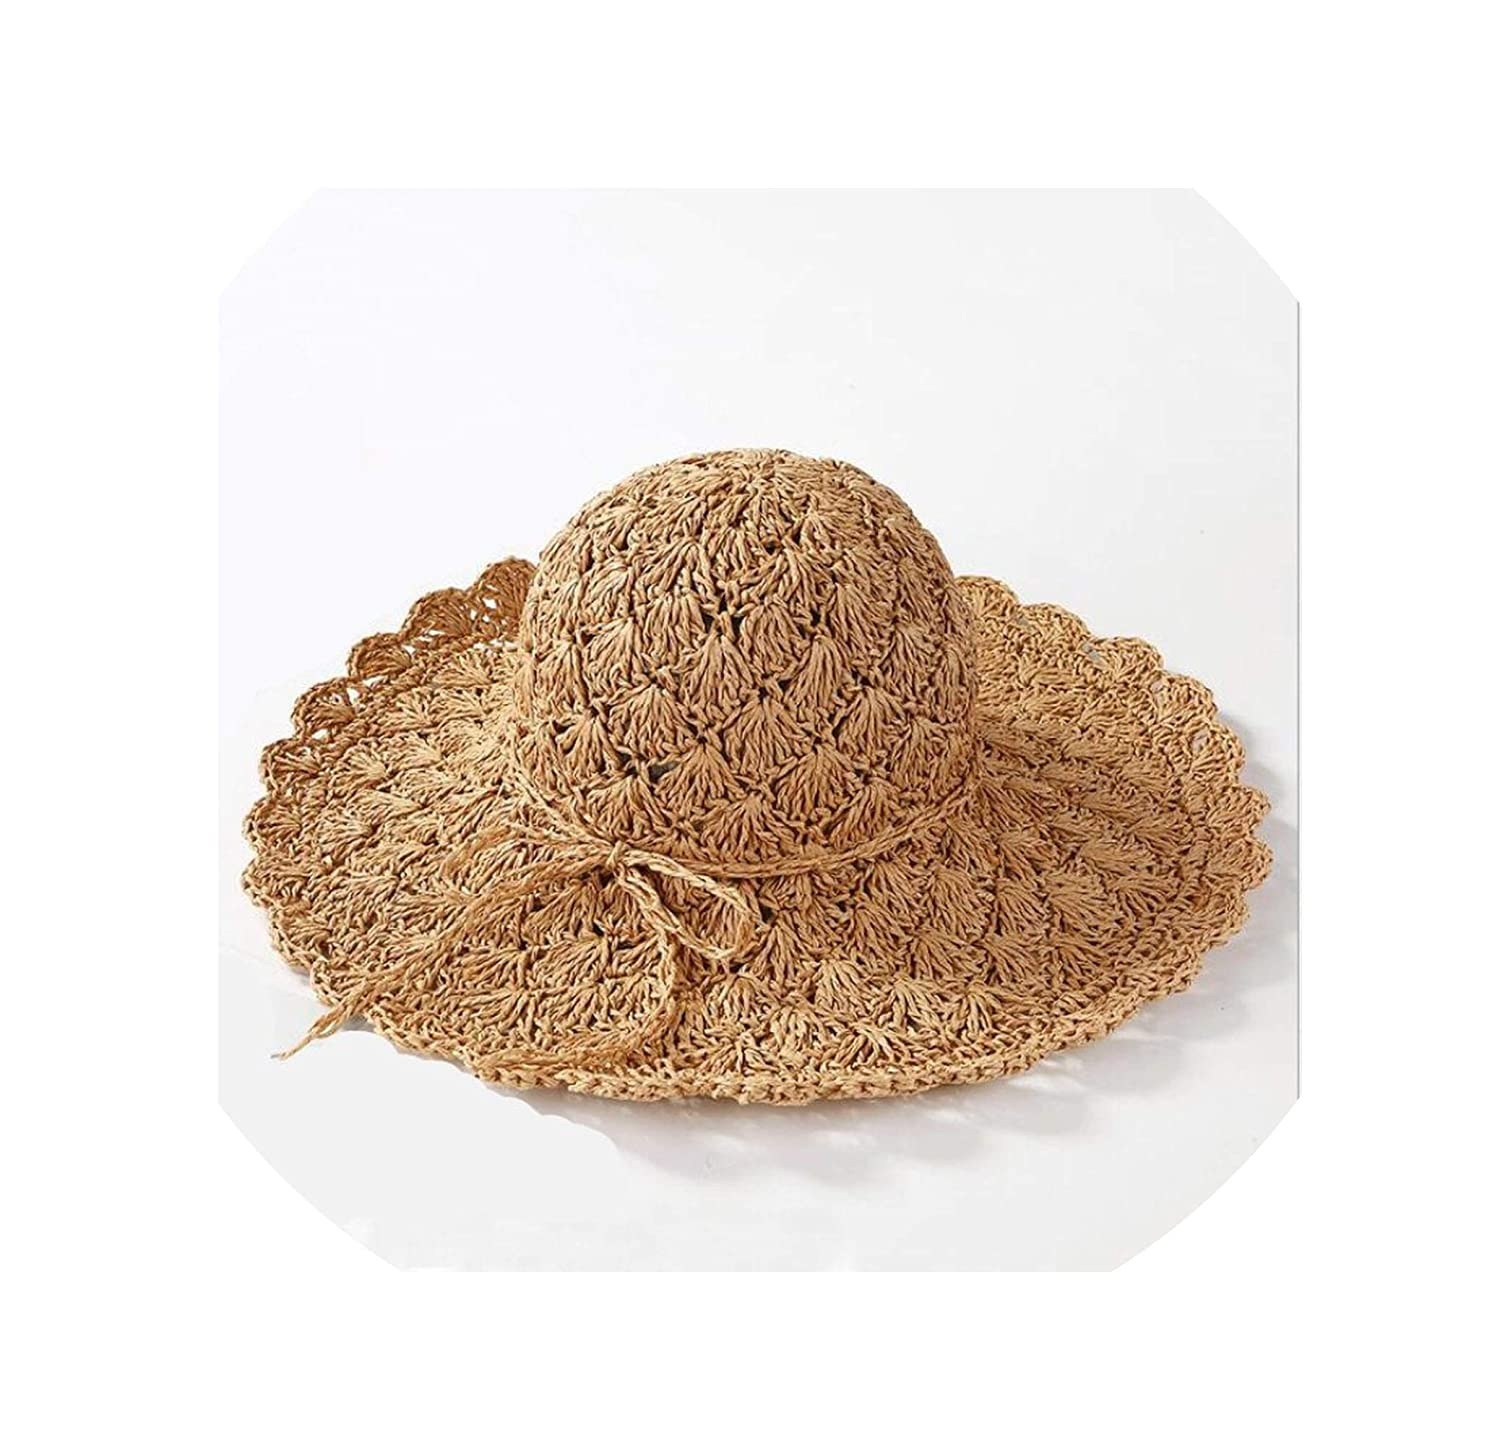 2019 Beach Summer Female Hat Wide Brim Floppy Straw Sun Hat Beach Women Hat Foldable Uv Protect Travel Cap Ladies Casual Cap